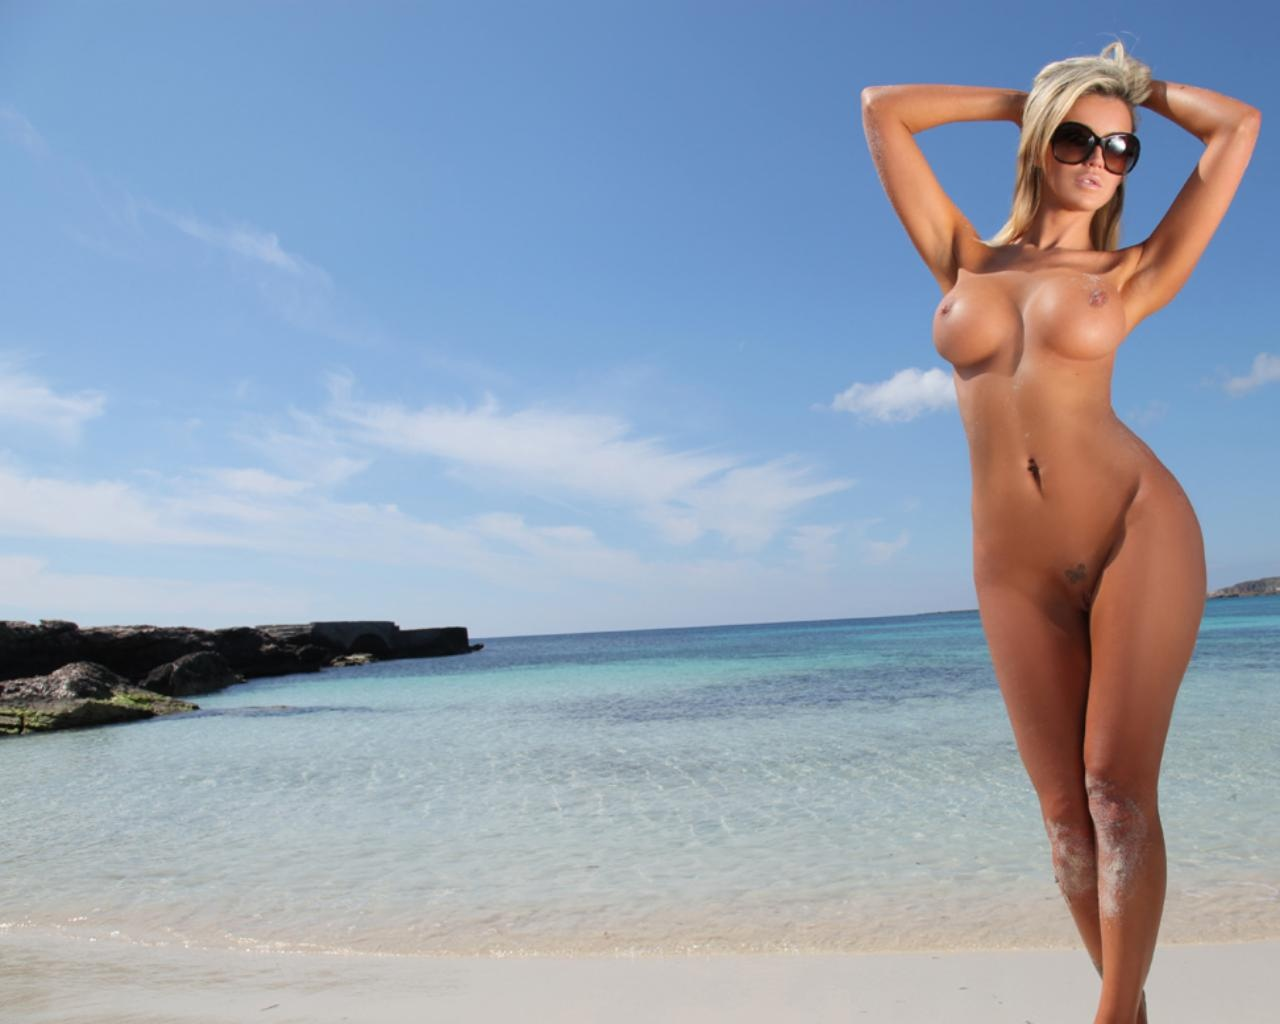 Wallpaper Holly Henderson, Nude, Naked, Beach, Big Tits -5747